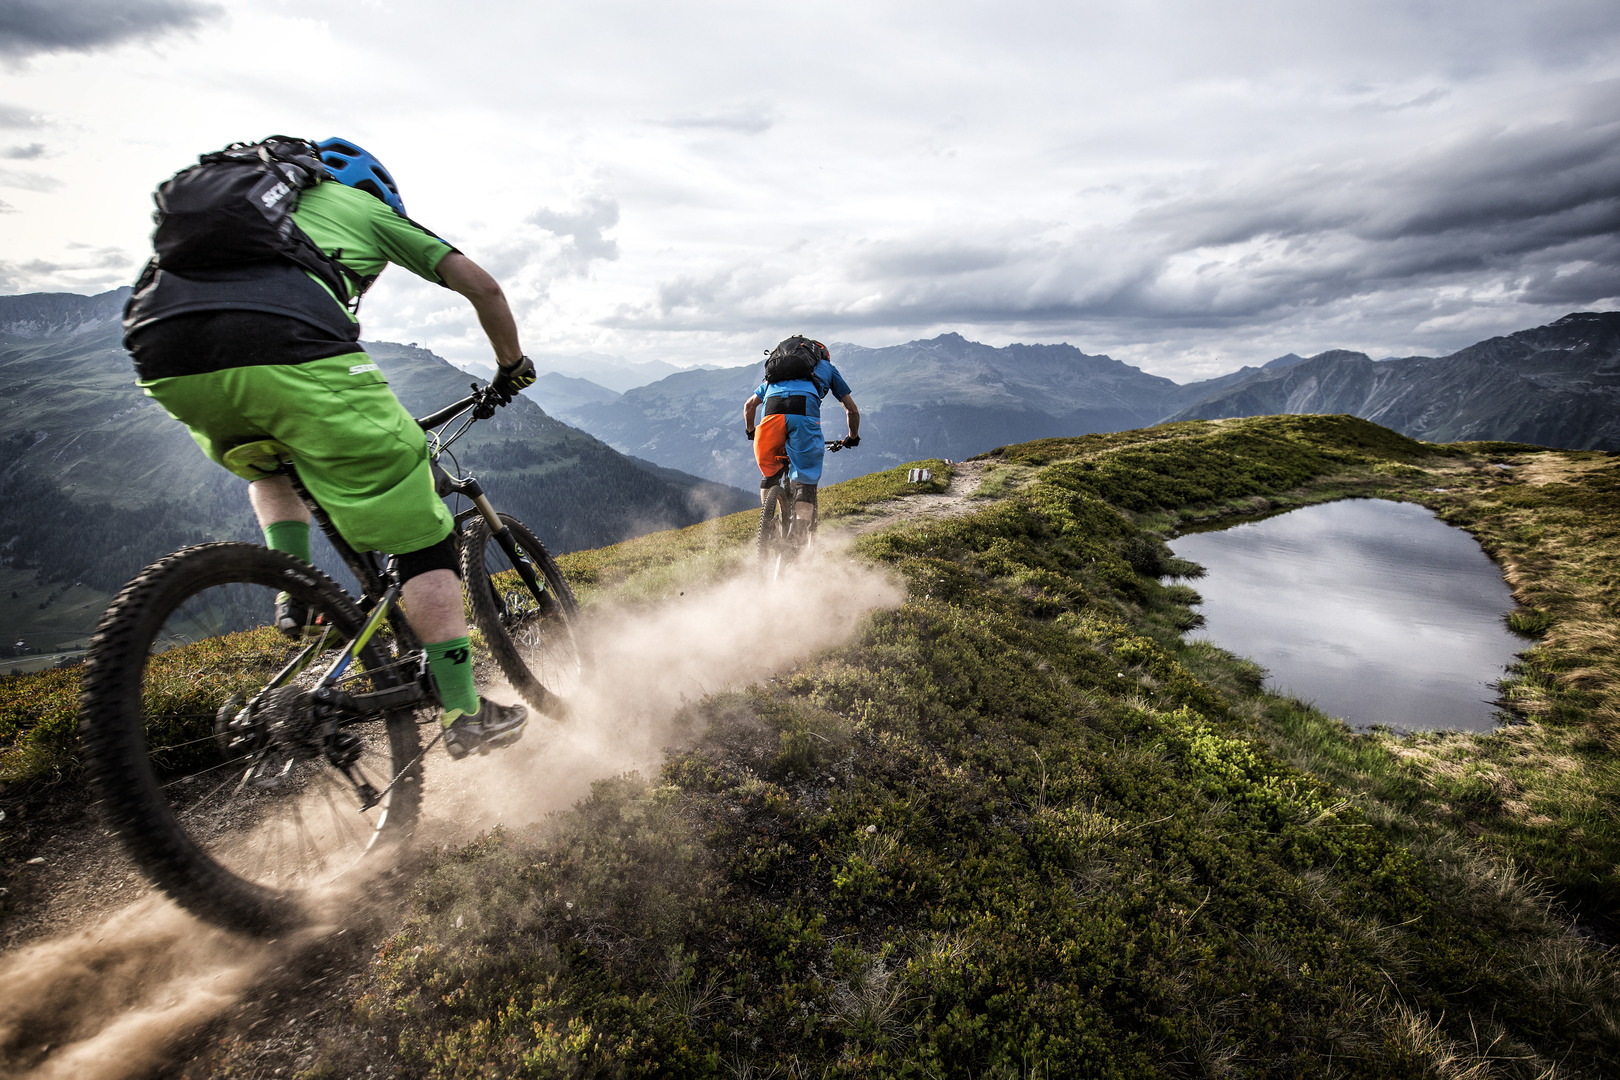 Bike_Trail_Tempo_Spass_Staub_Berge_(C)ScottSportsSA